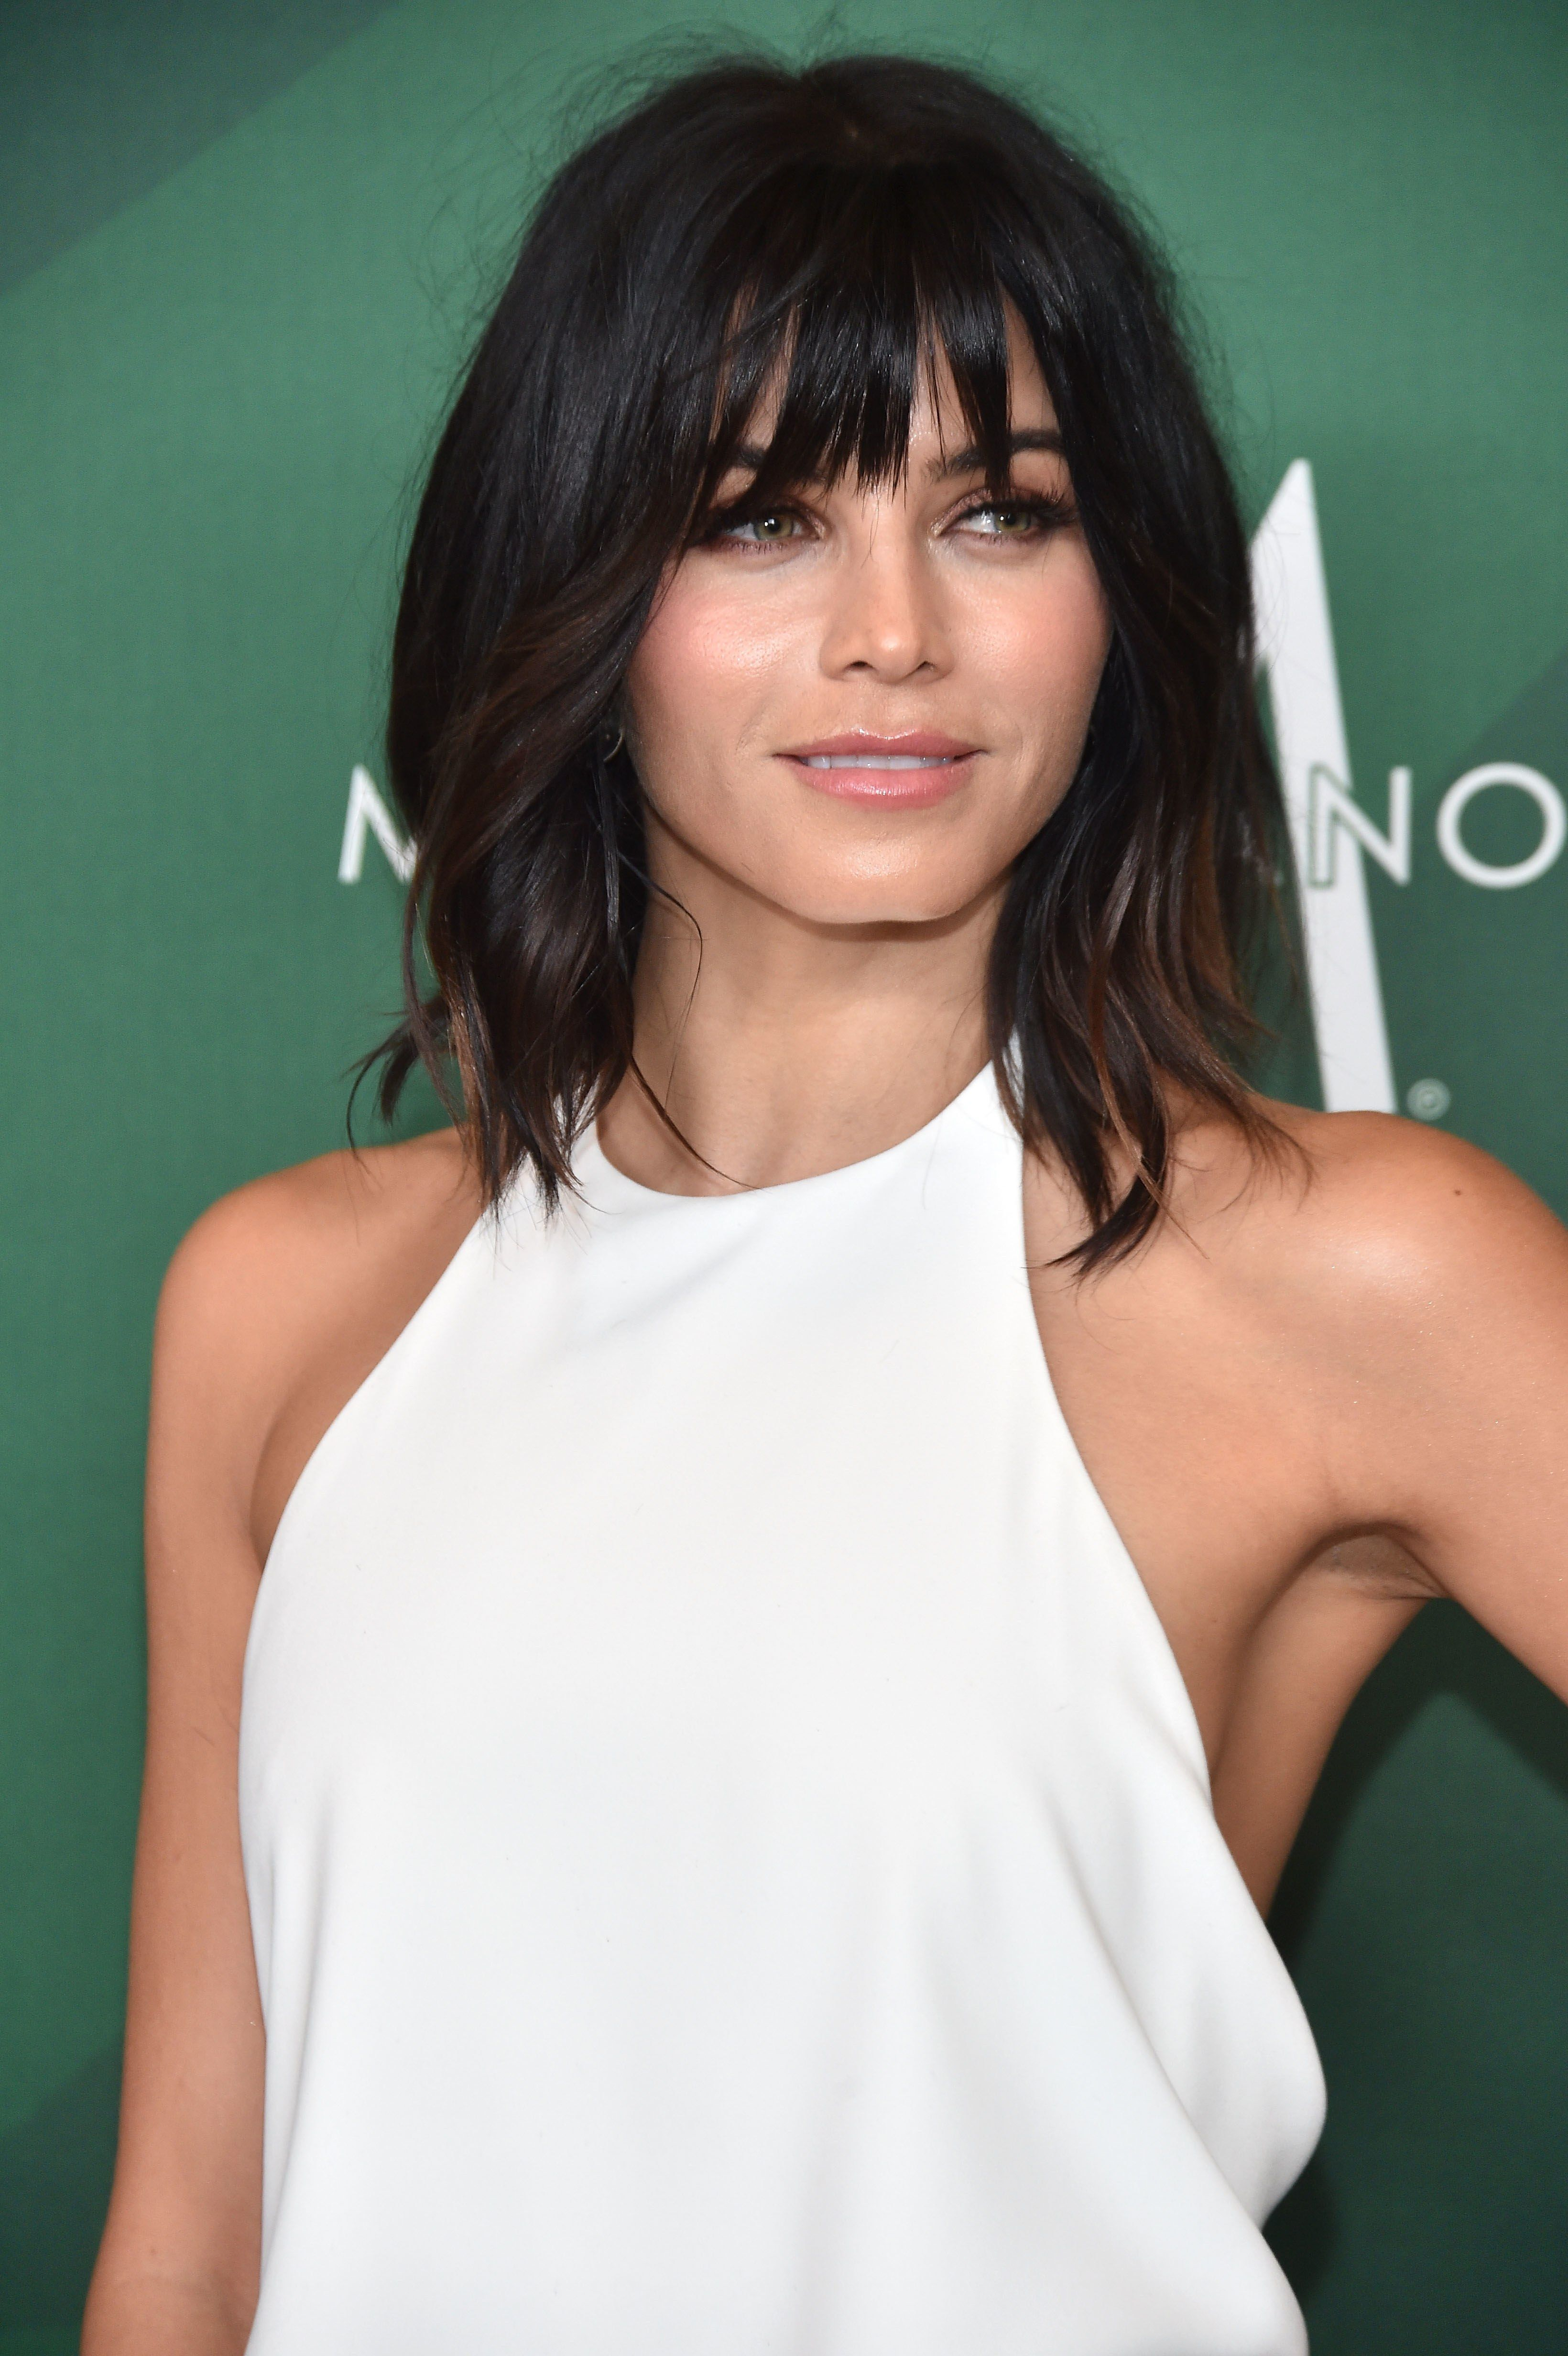 The Best Celebrity Haircuts Of 2016 Medium Hair Styles Hair Styles Long Hair Styles